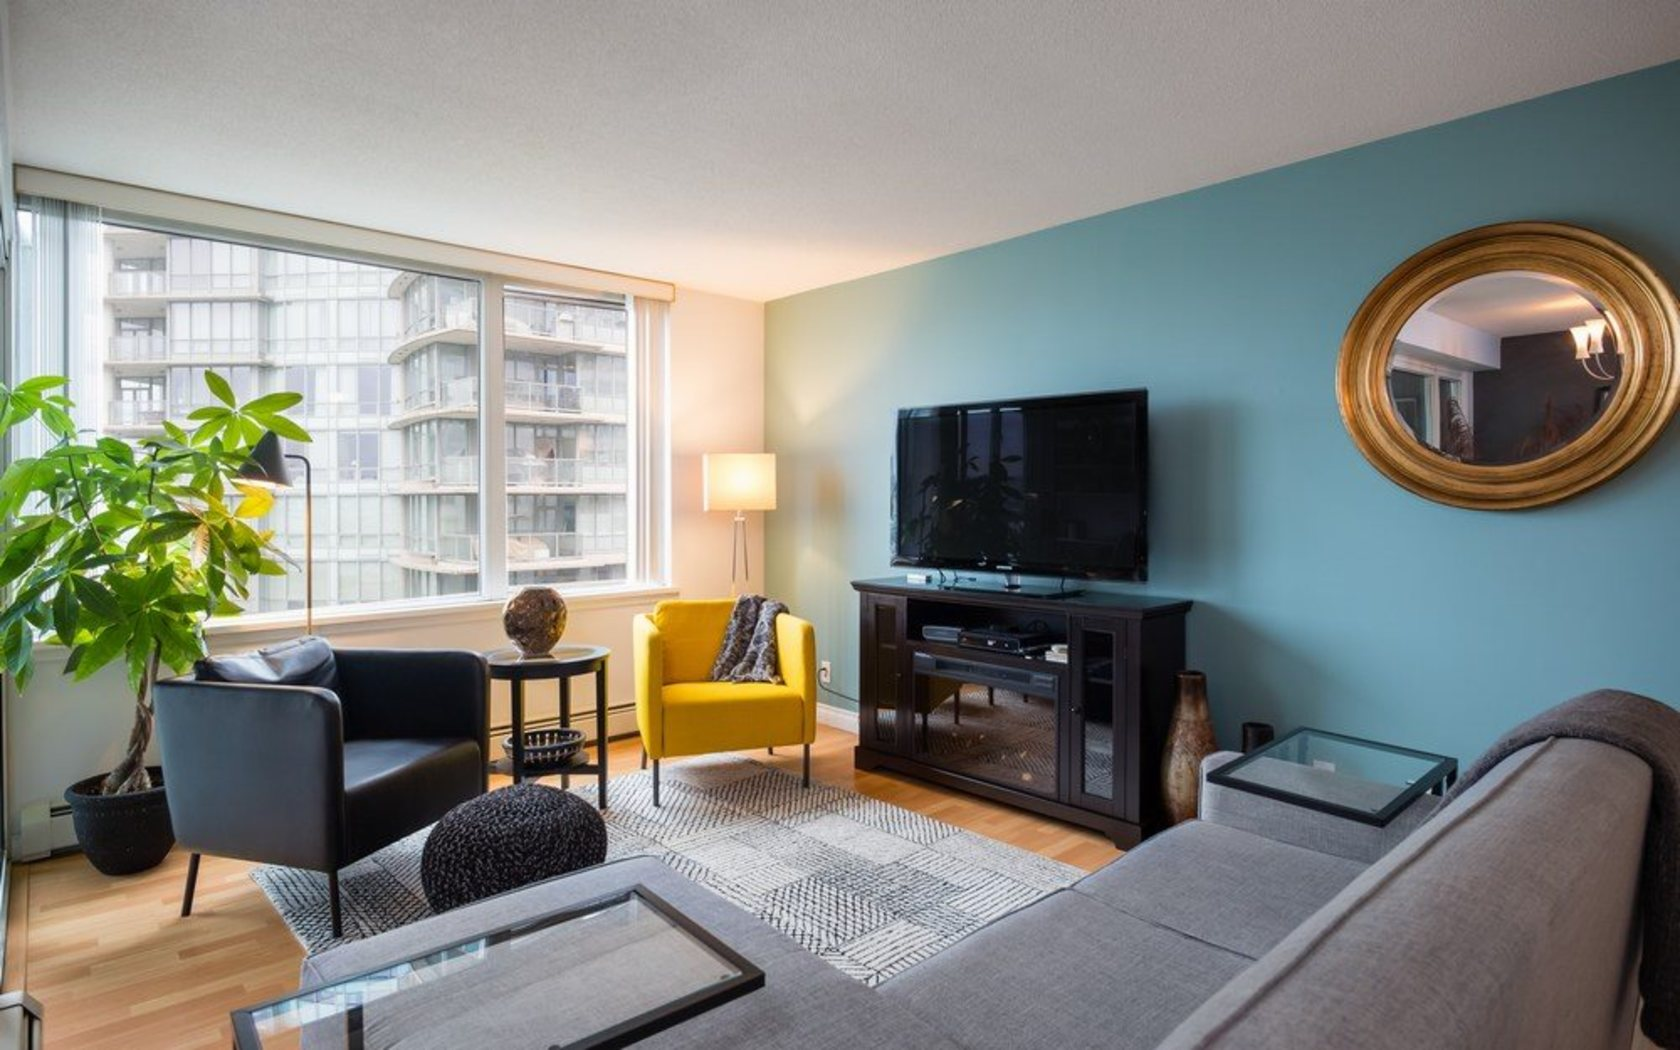 262258306-2 at 705 - 1288 Marinaside, Yaletown, Vancouver West